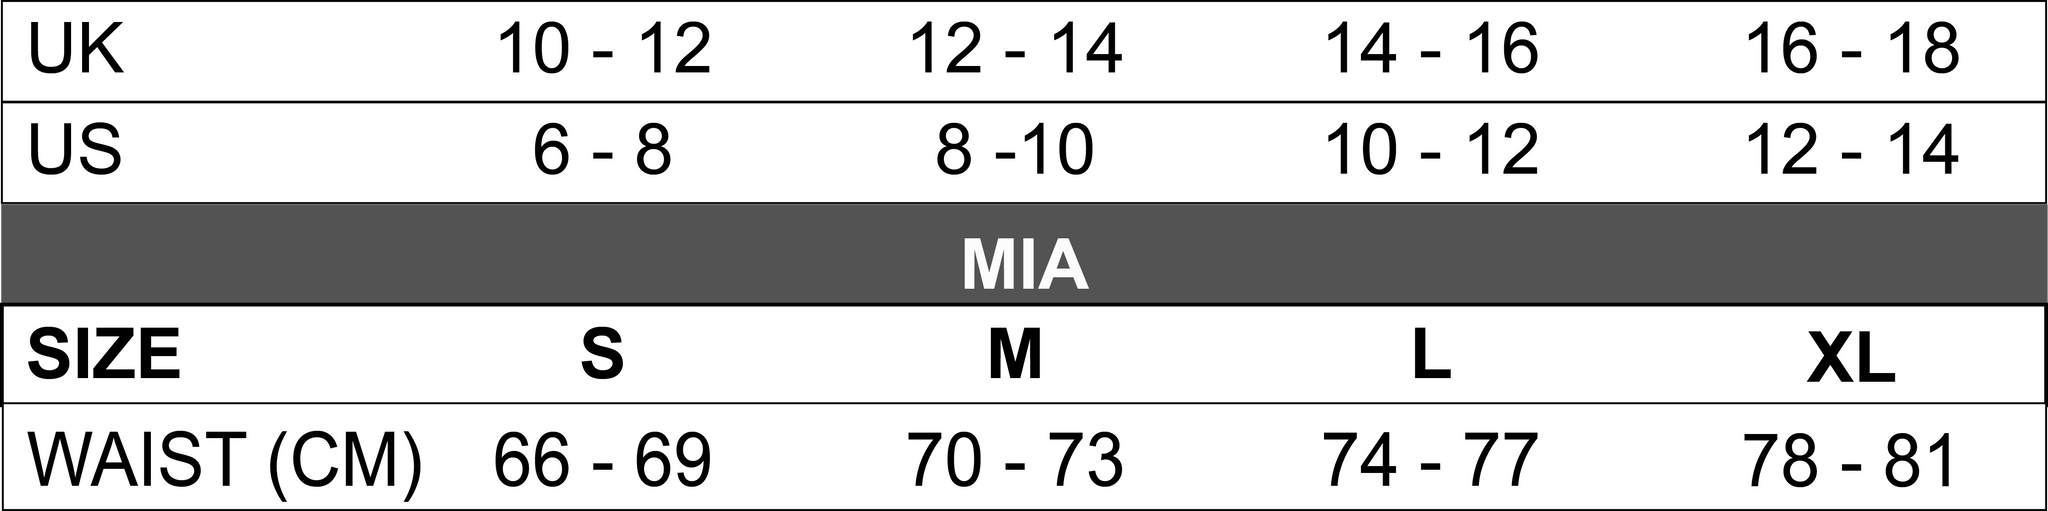 mia sizing guide